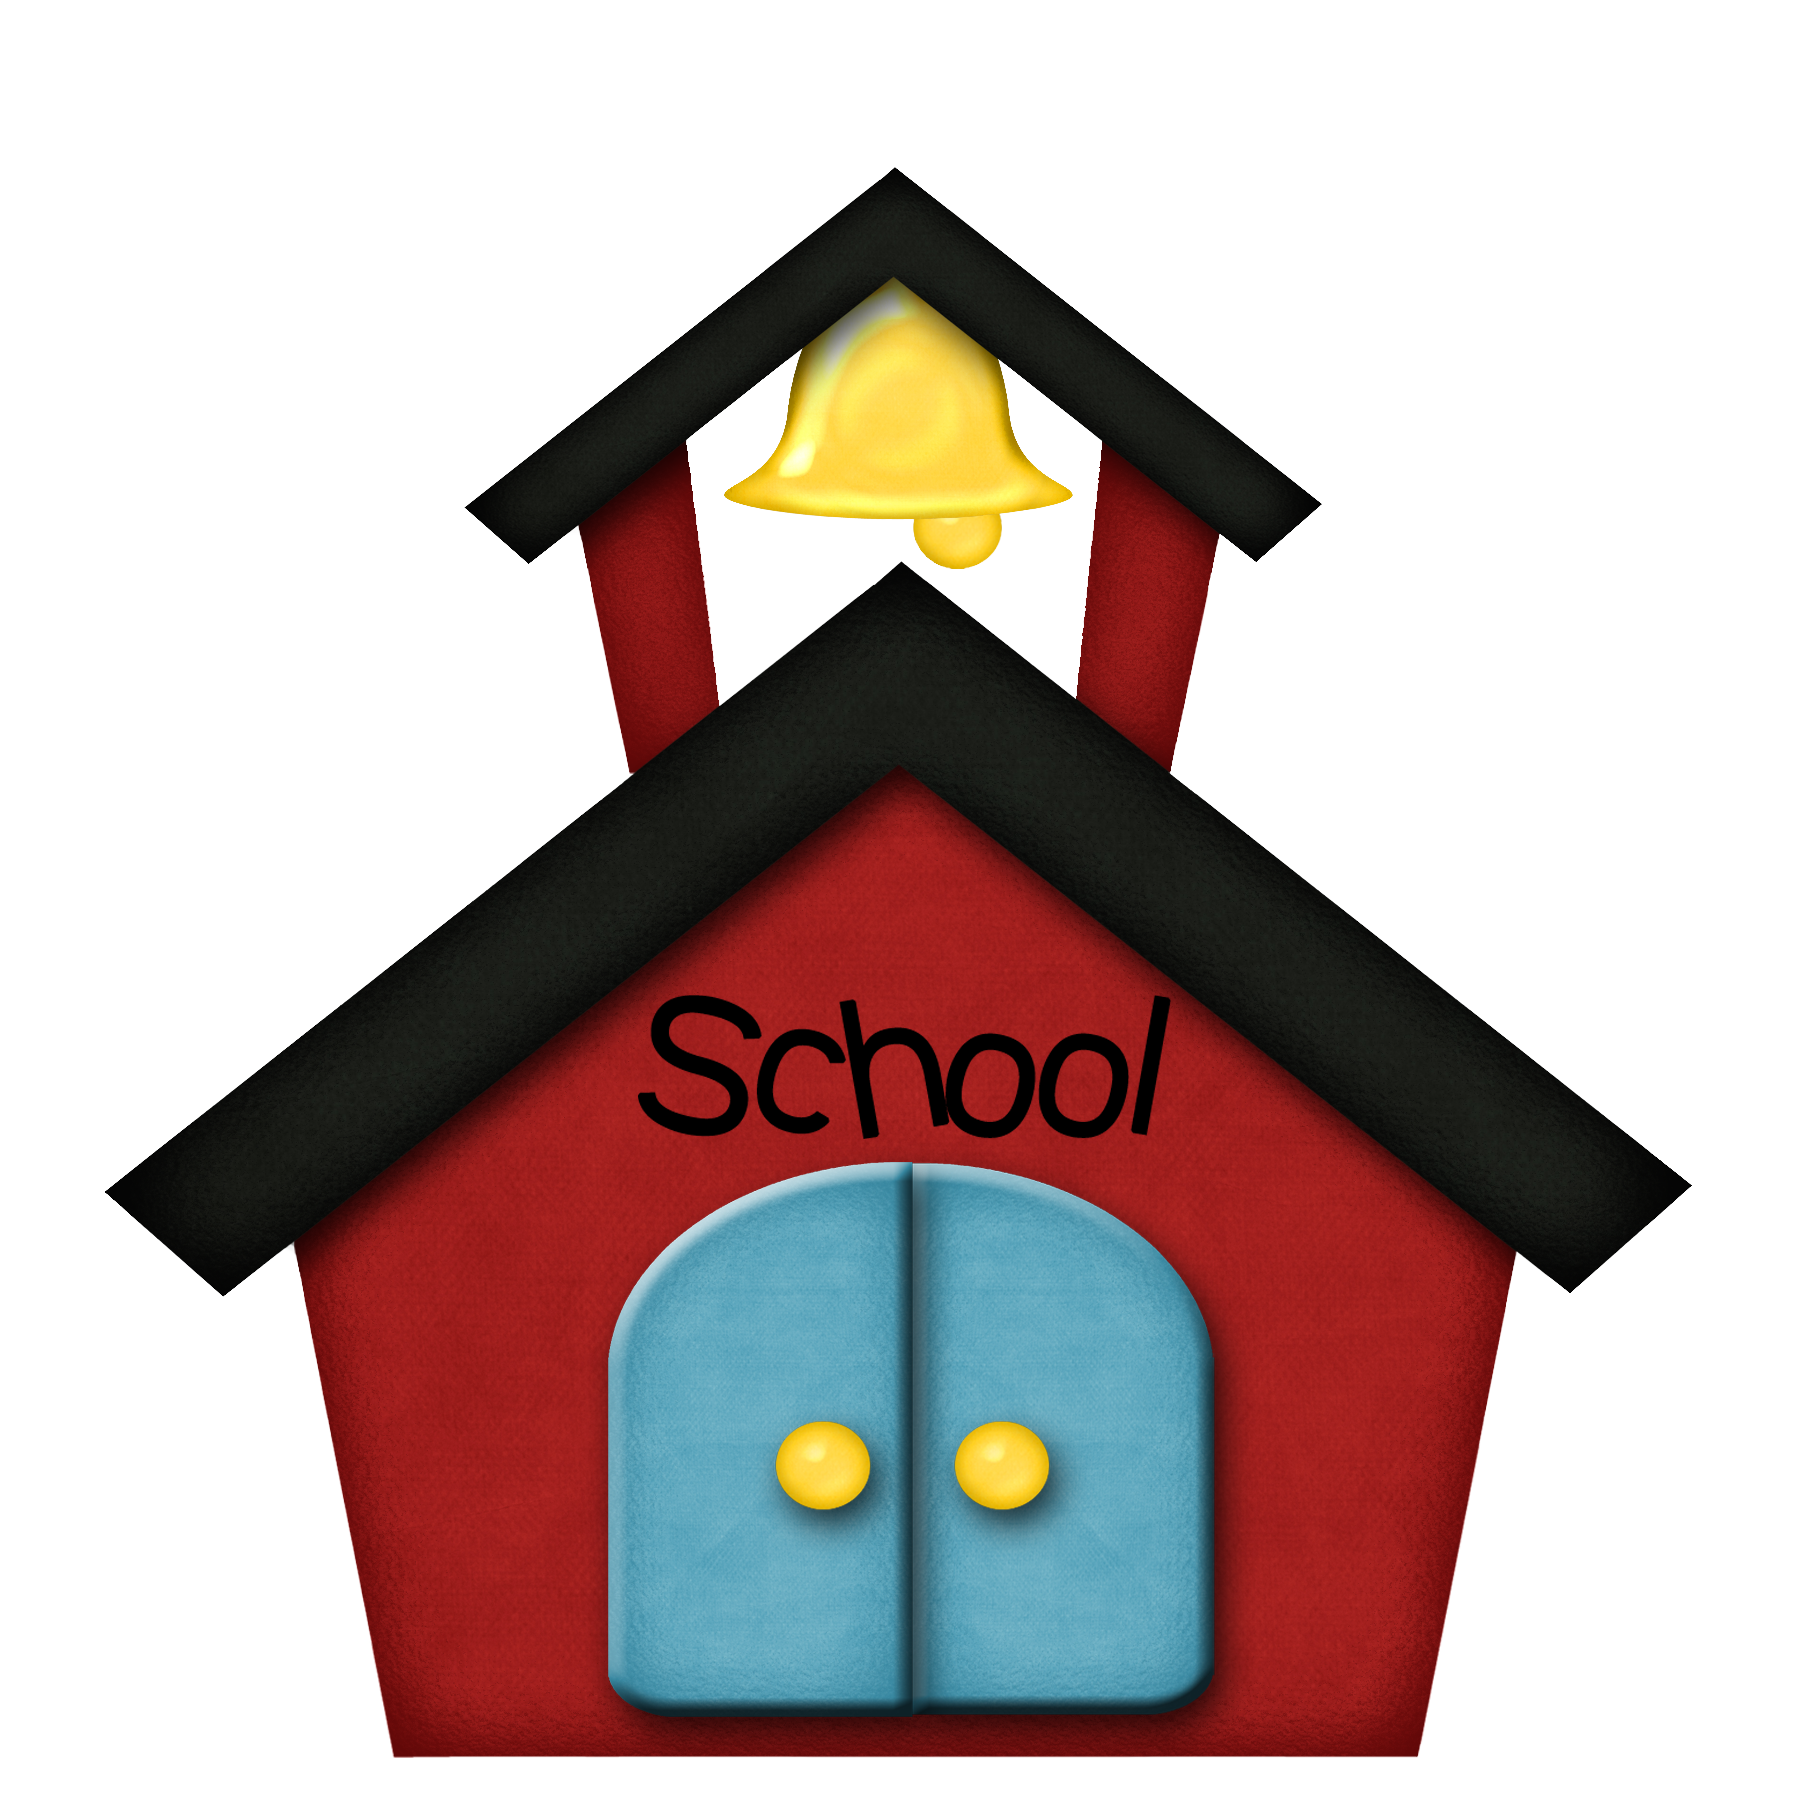 School building clipart free jpg free download School building clipart png - ClipartFest jpg free download